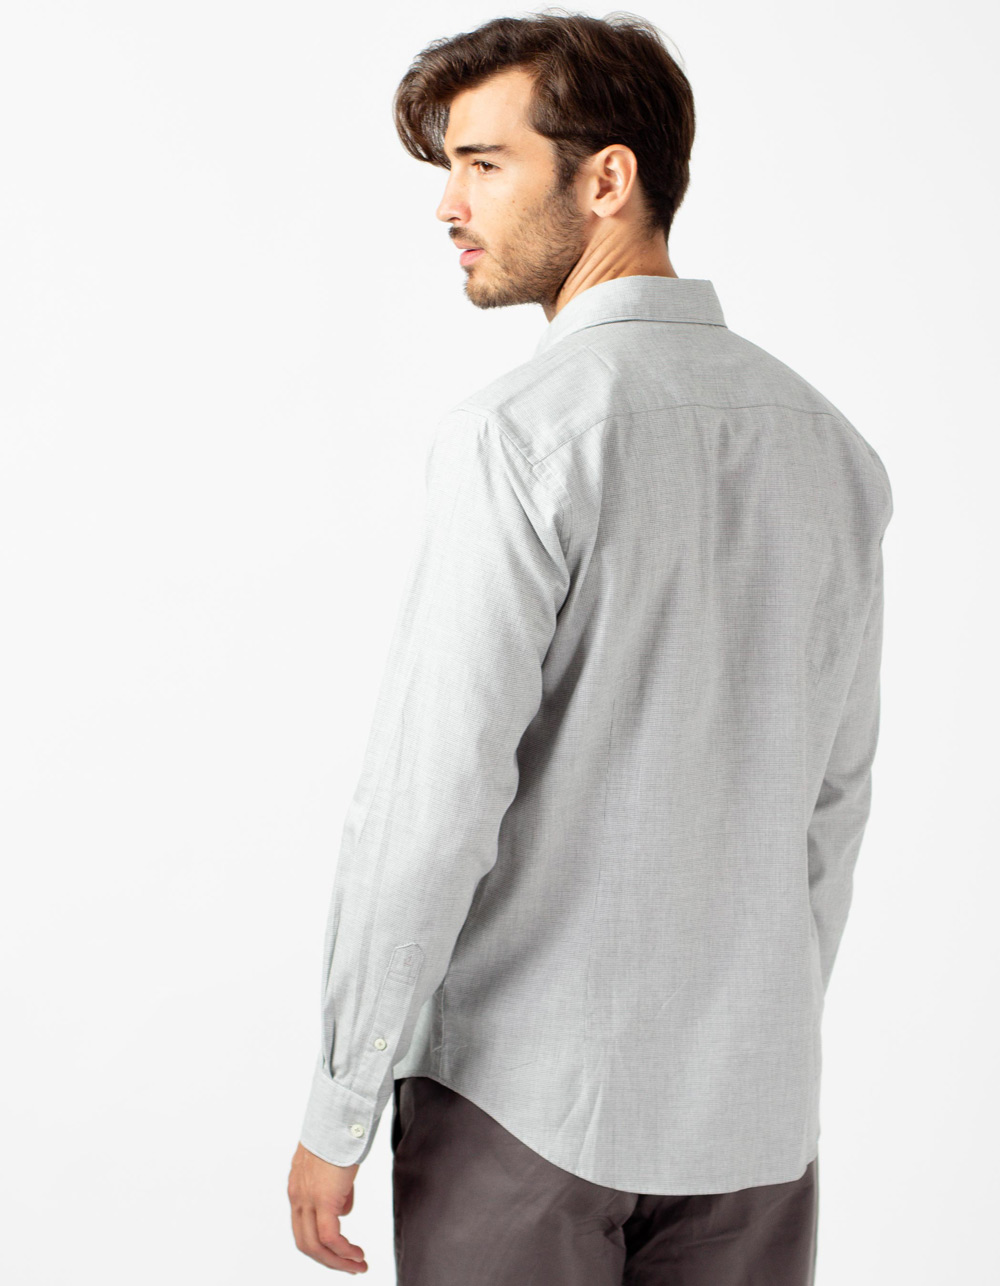 Grey Oxford shirt - Backside